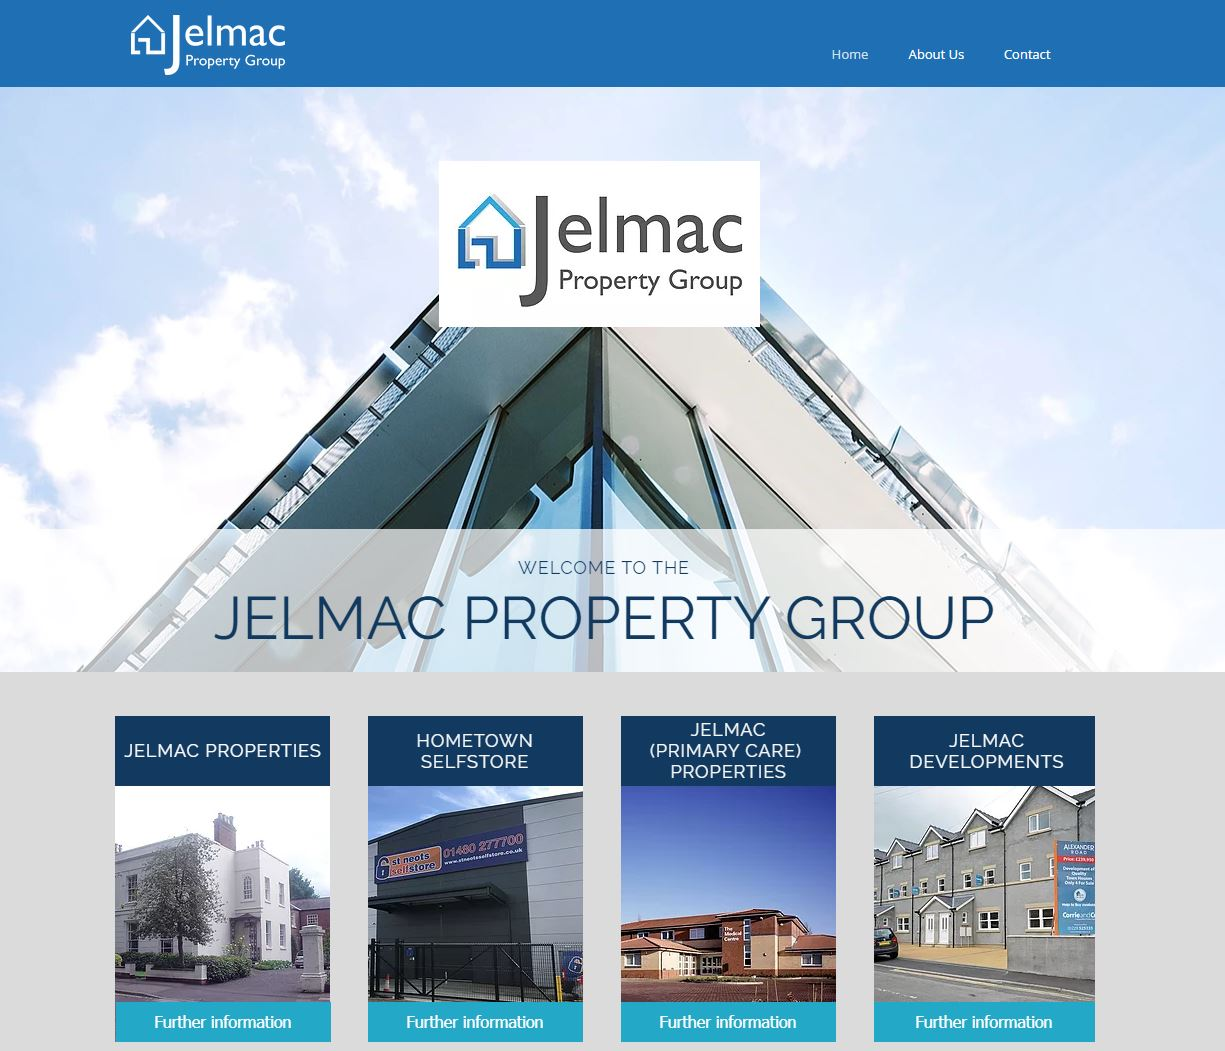 Jelmac Property Group